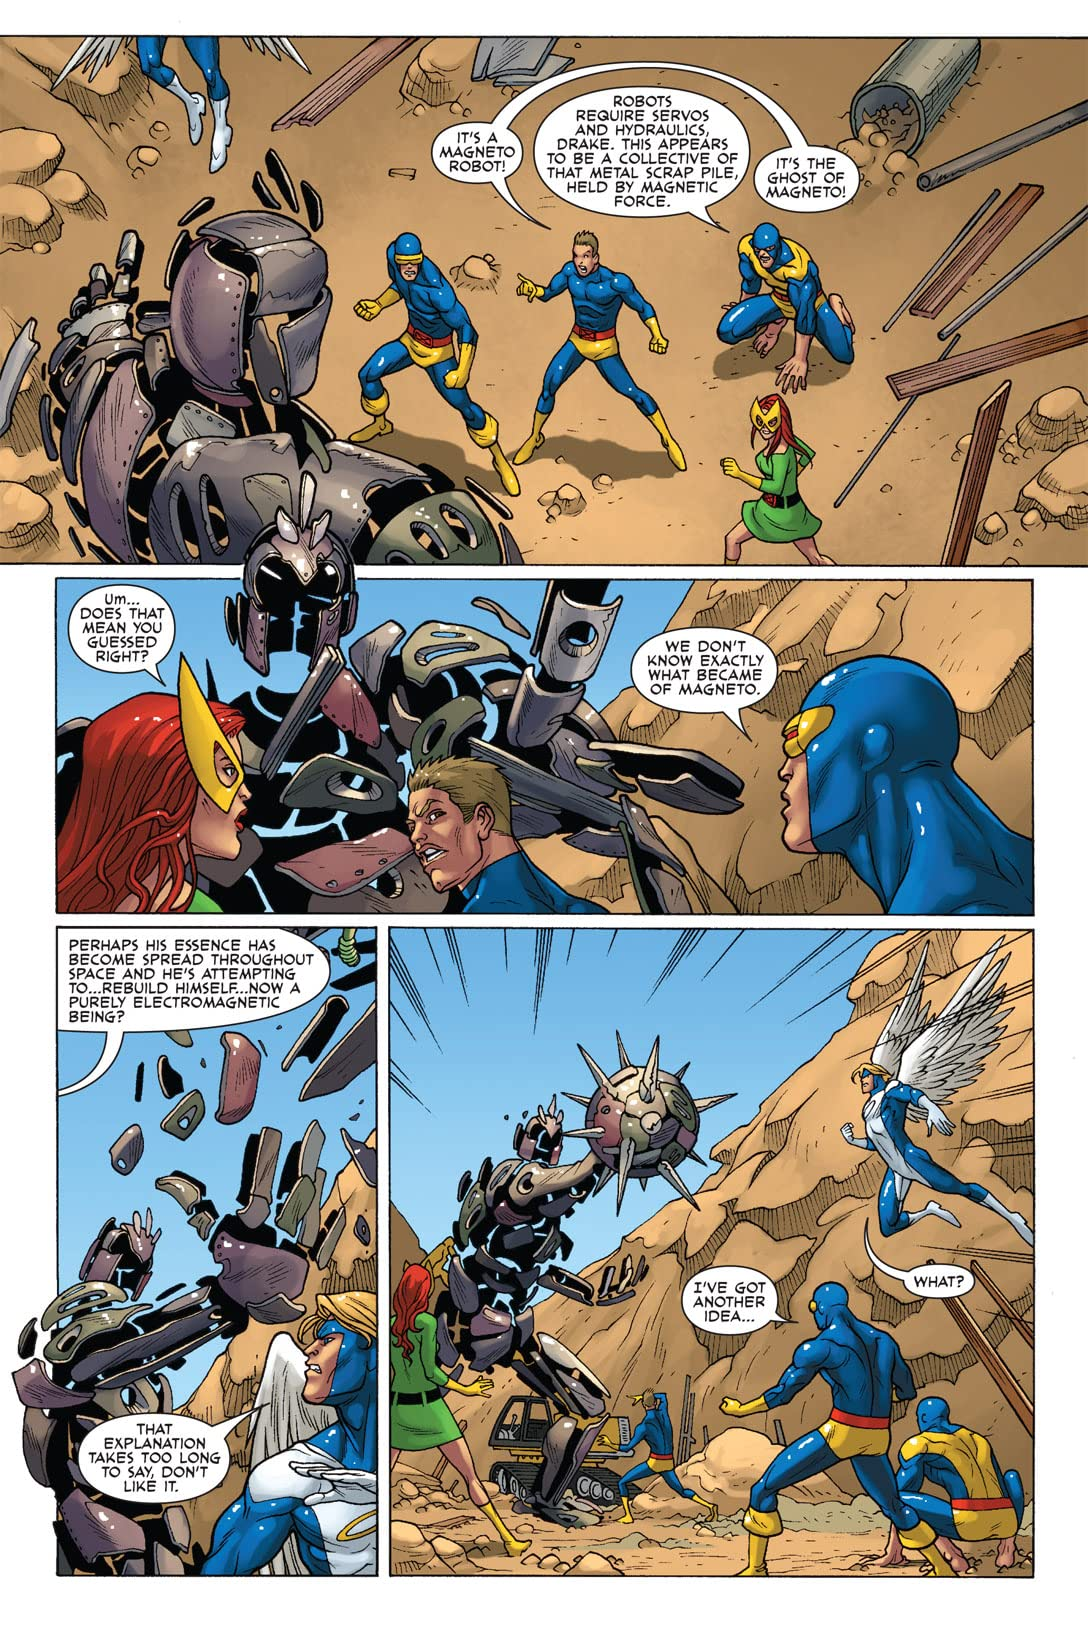 X-Men: First Class Finals #3 (of 4)